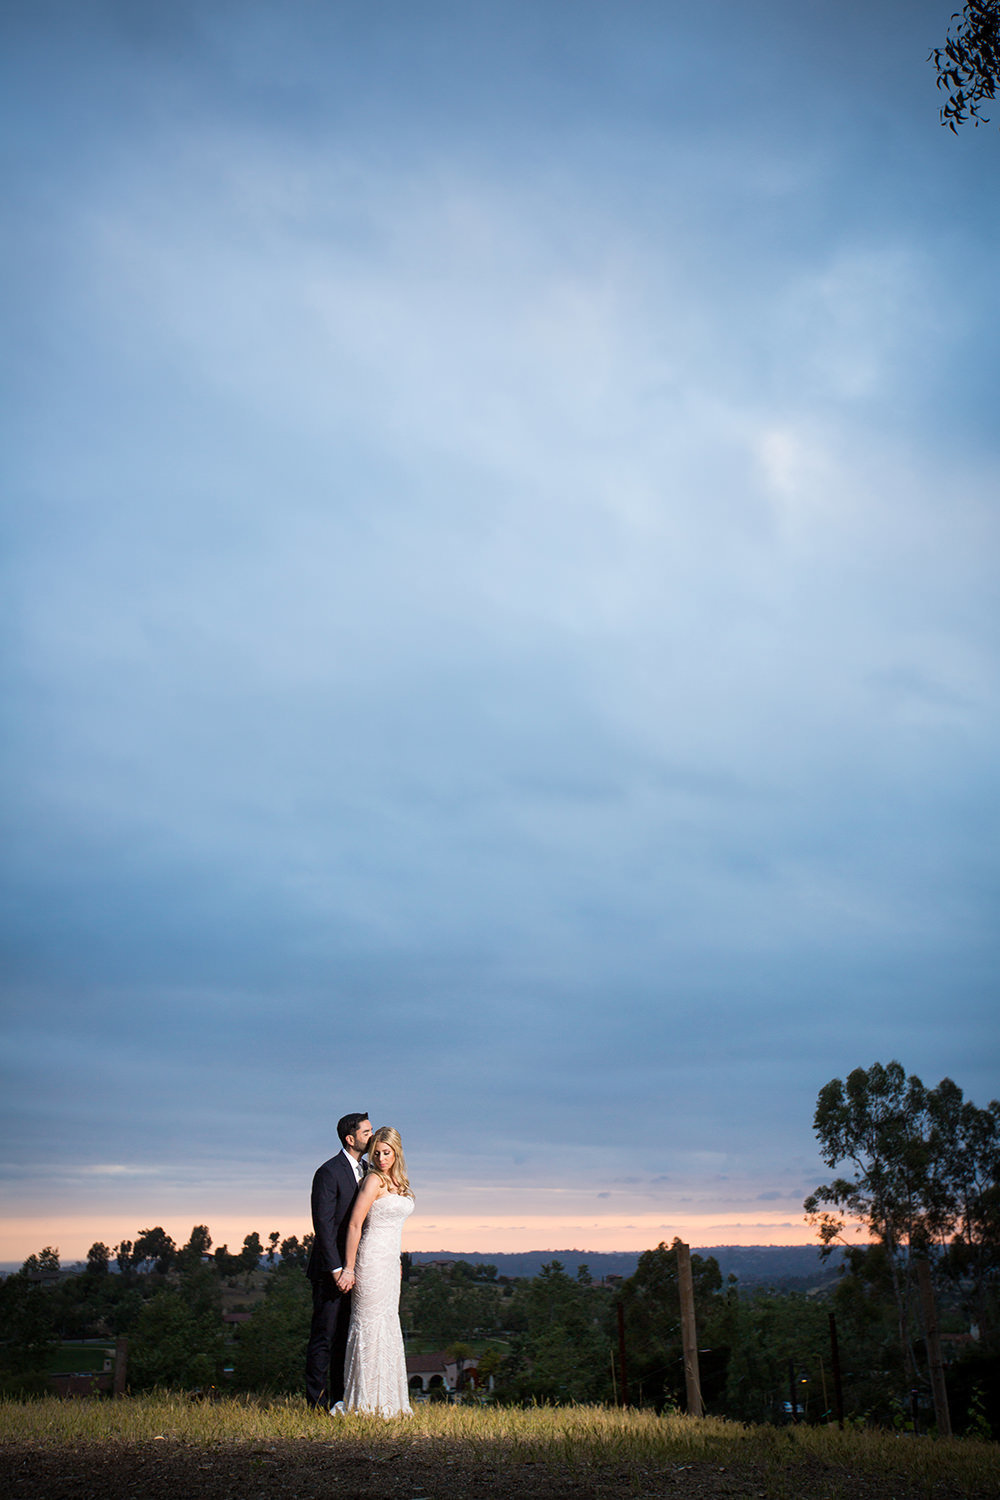 stunning night image with bride and groom